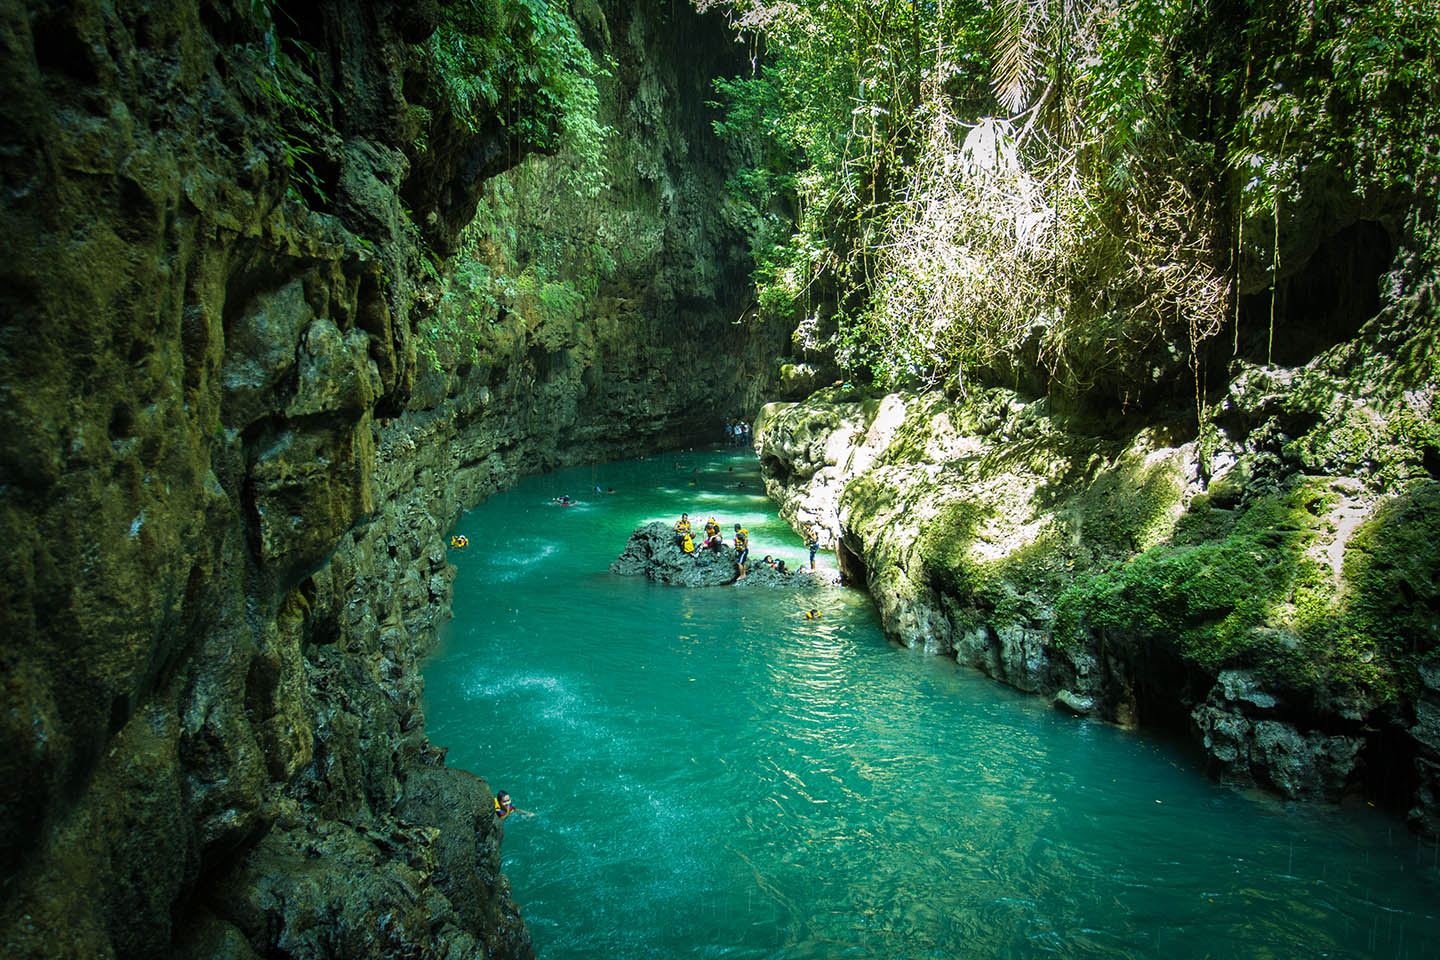 Green Canyon Pangandaran Java Indonesia cliff jump / Indonesien Turmspringen Klippenspringen